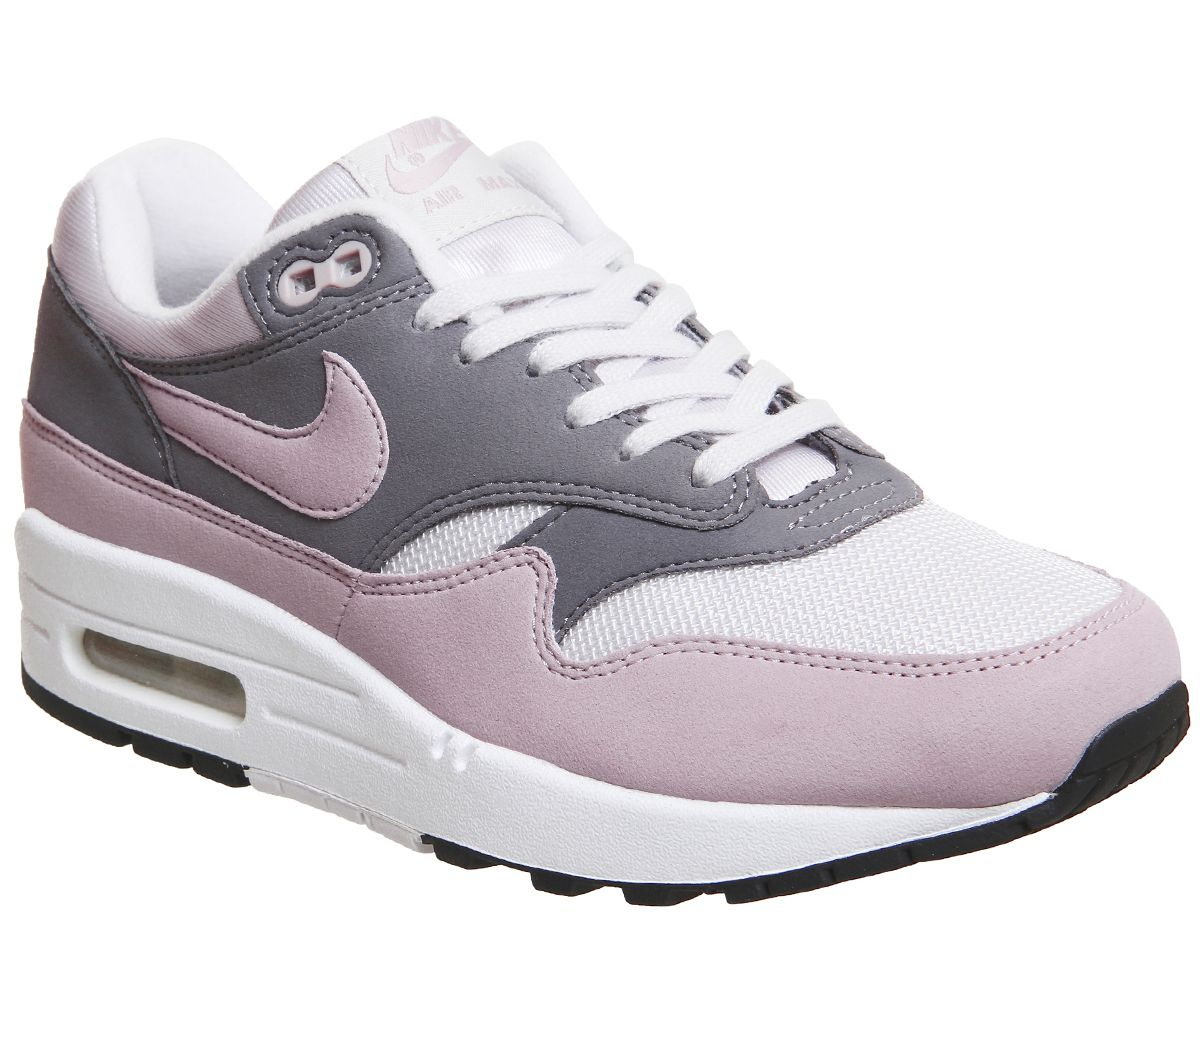 9801f96774 Nike Air Max 1 Trainers Vast Grey Particle Pink - Hers trainers